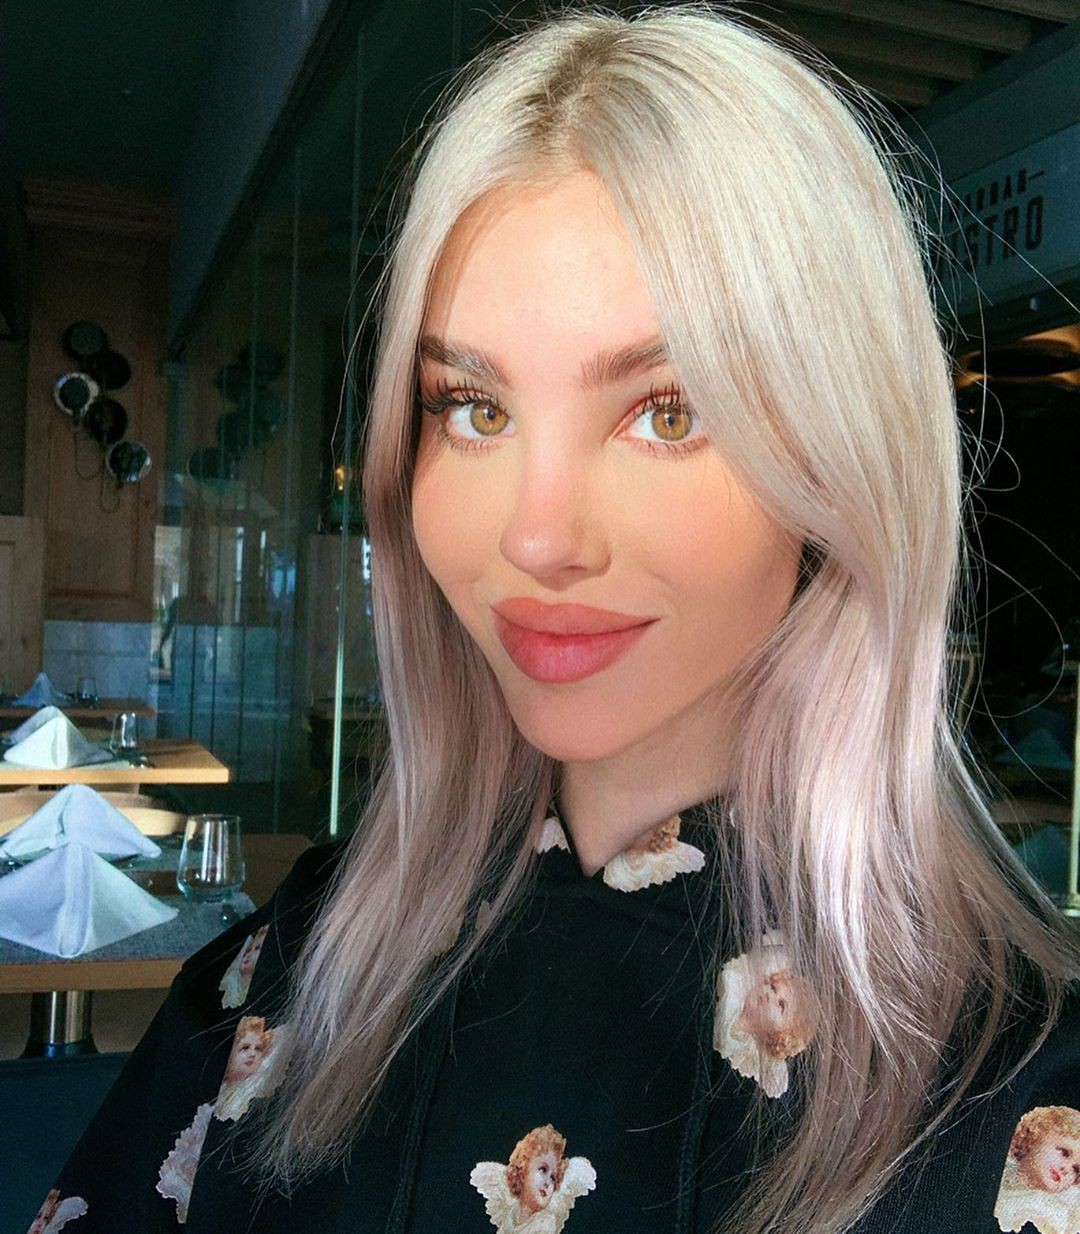 Maria Domark blond hairstyle, Cute Face, Natural Lips